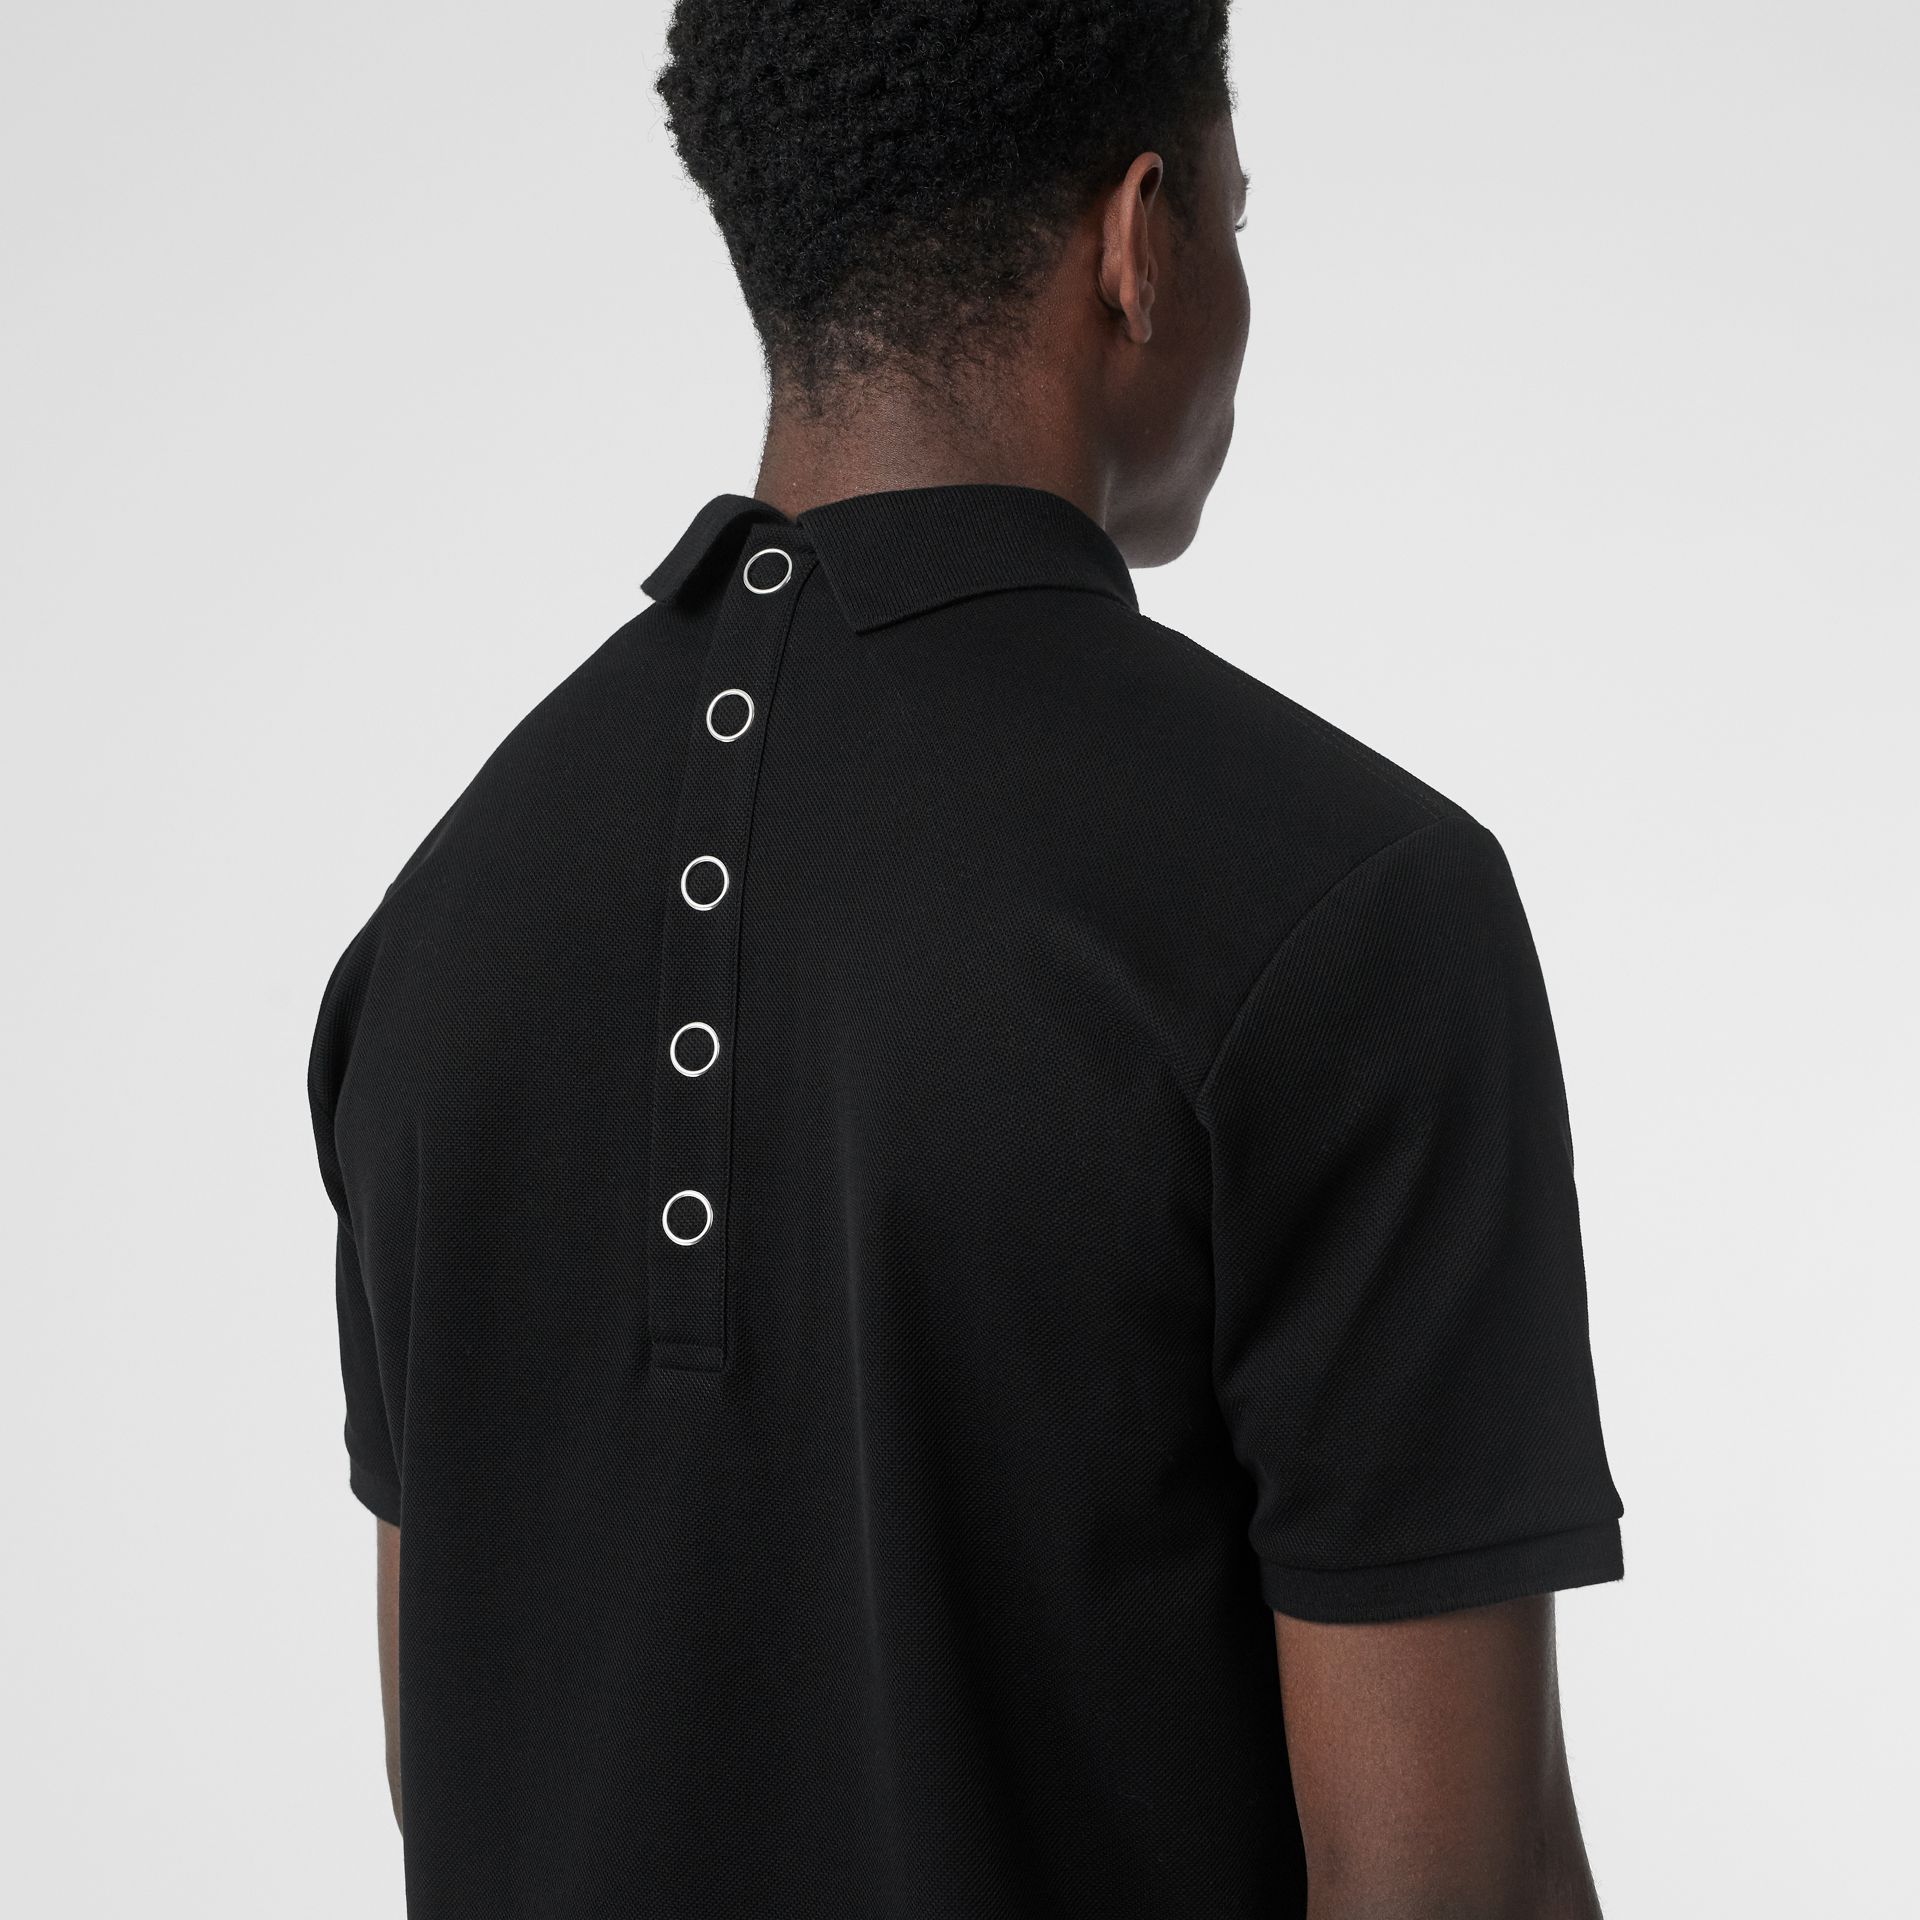 Monogram Motif Cotton Piqué Polo Shirt in Black | Burberry United States - gallery image 4